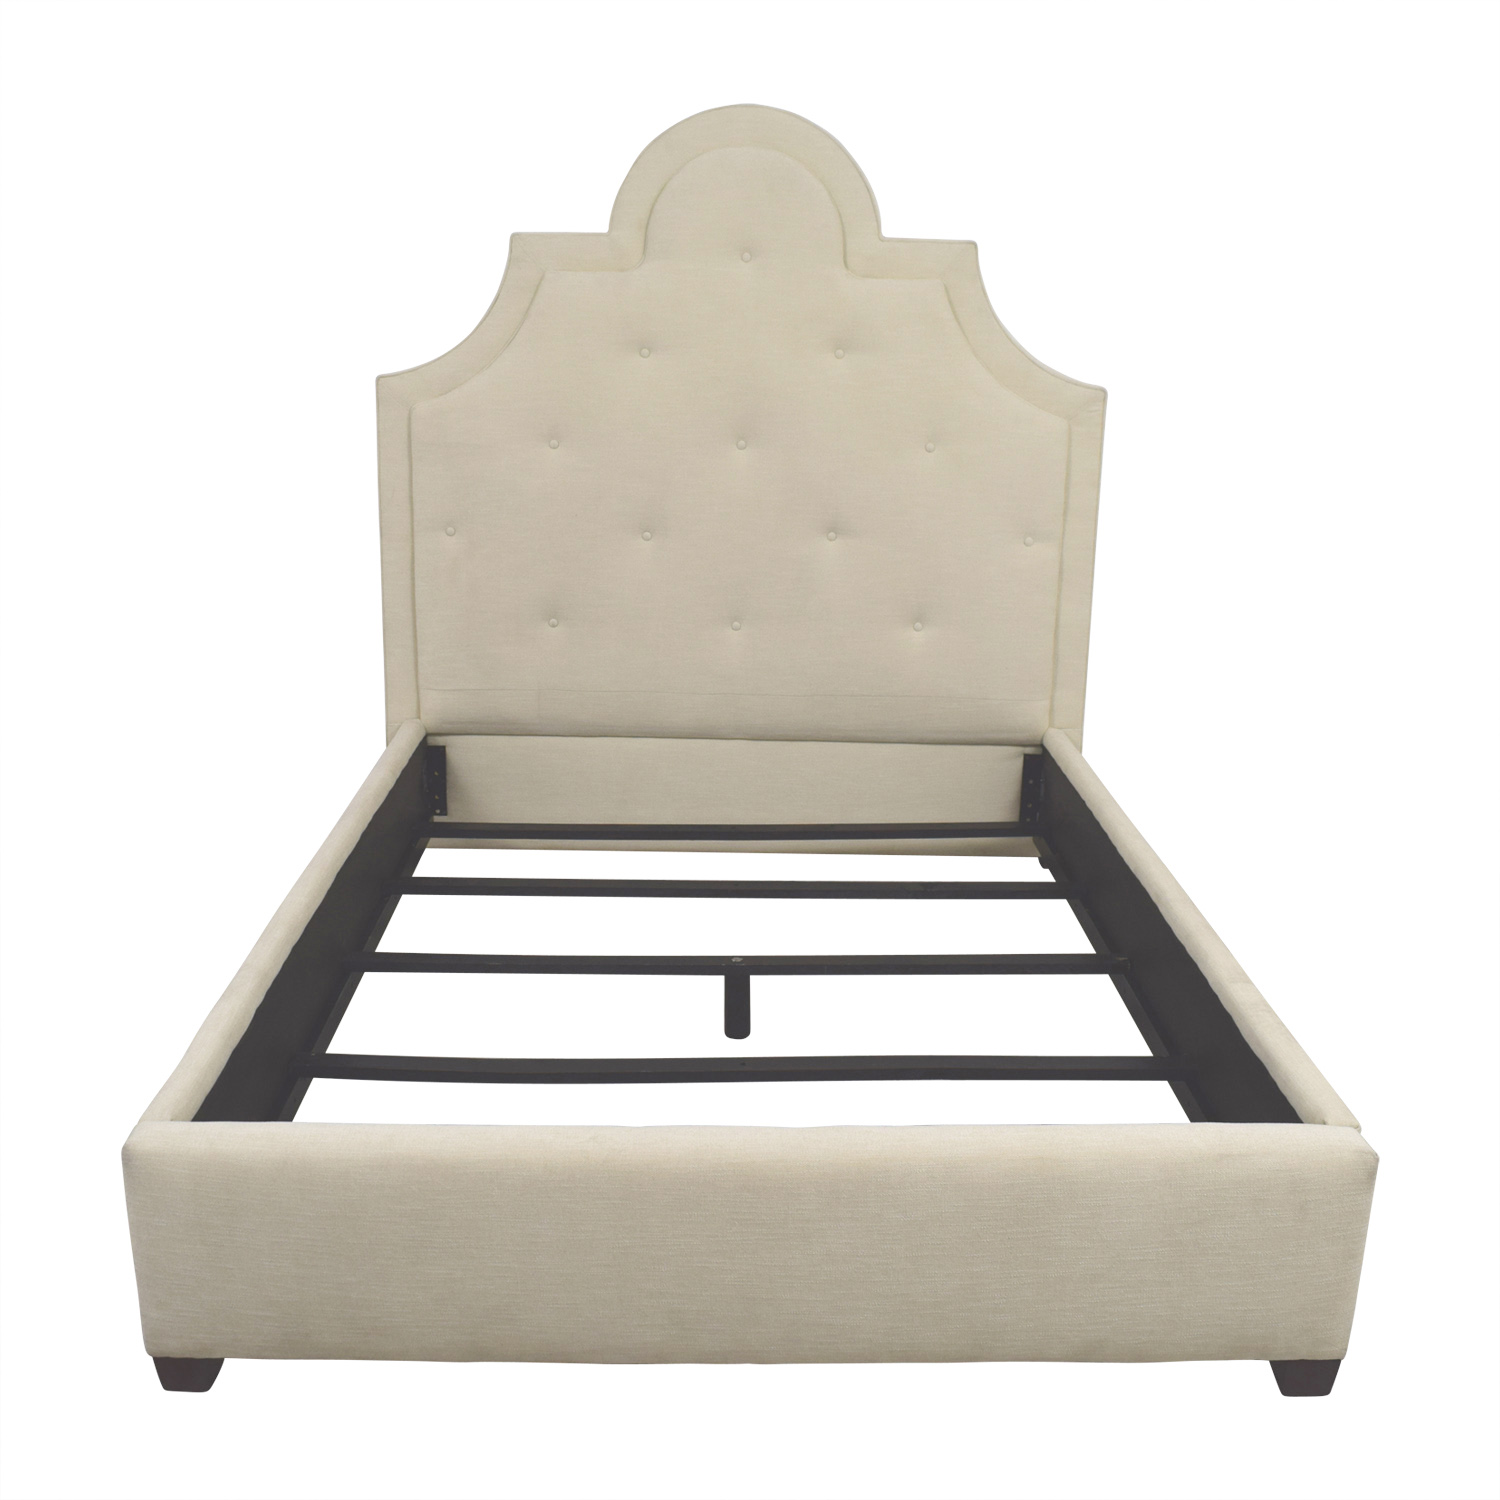 Pottery Barn Pottery Barn Upholstered York Queen Bed Bed Frames